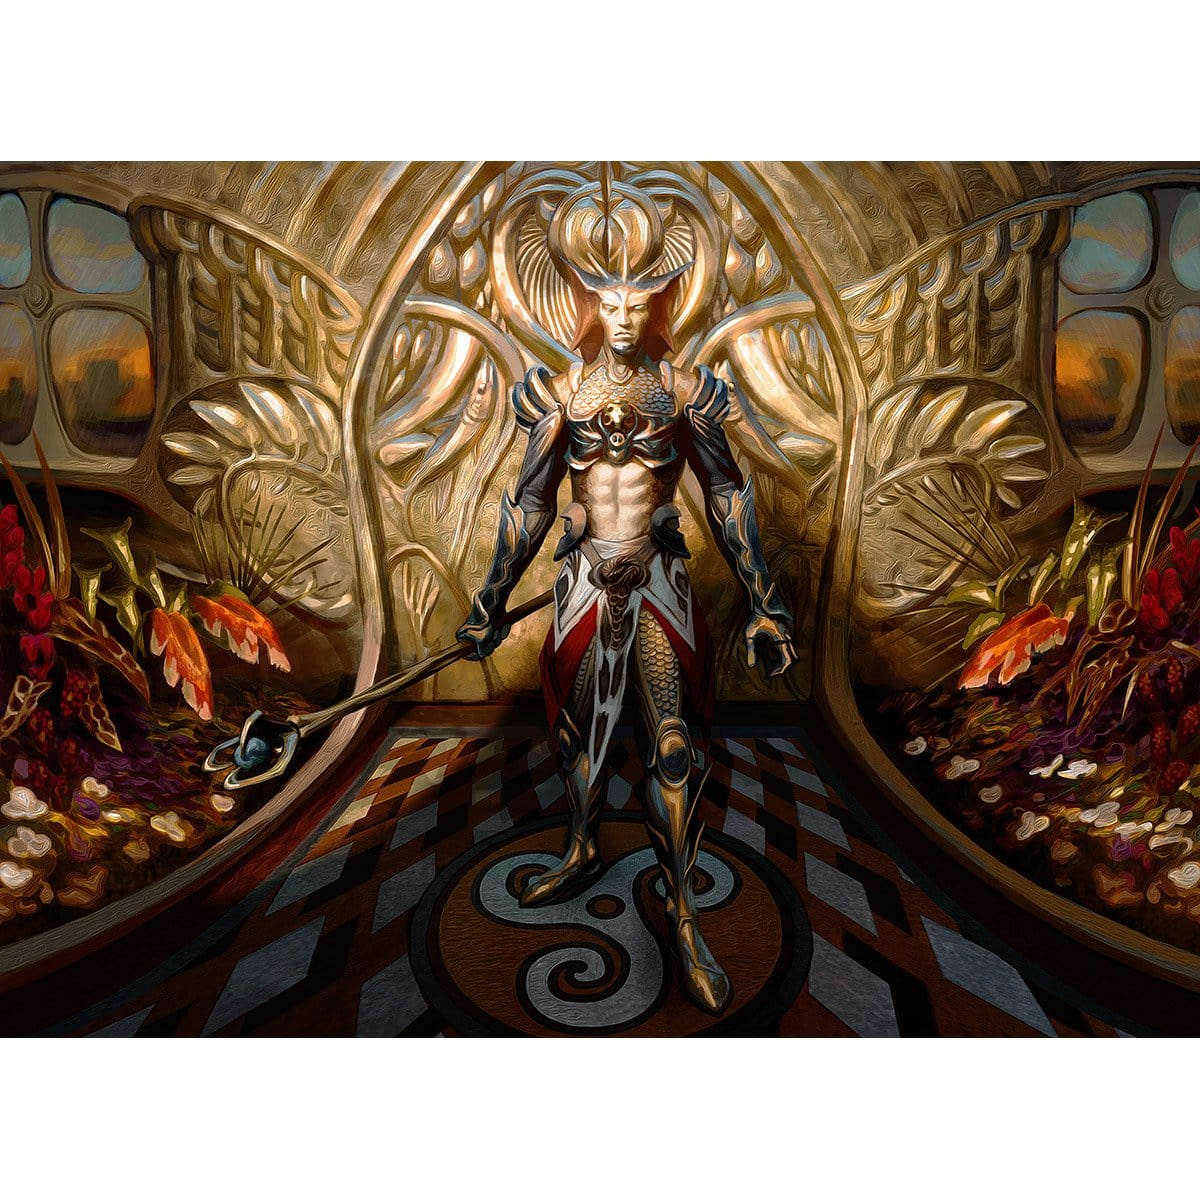 Vorel of the Hull Clade Print - Print - Original Magic Art - Accessories for Magic the Gathering and other card games